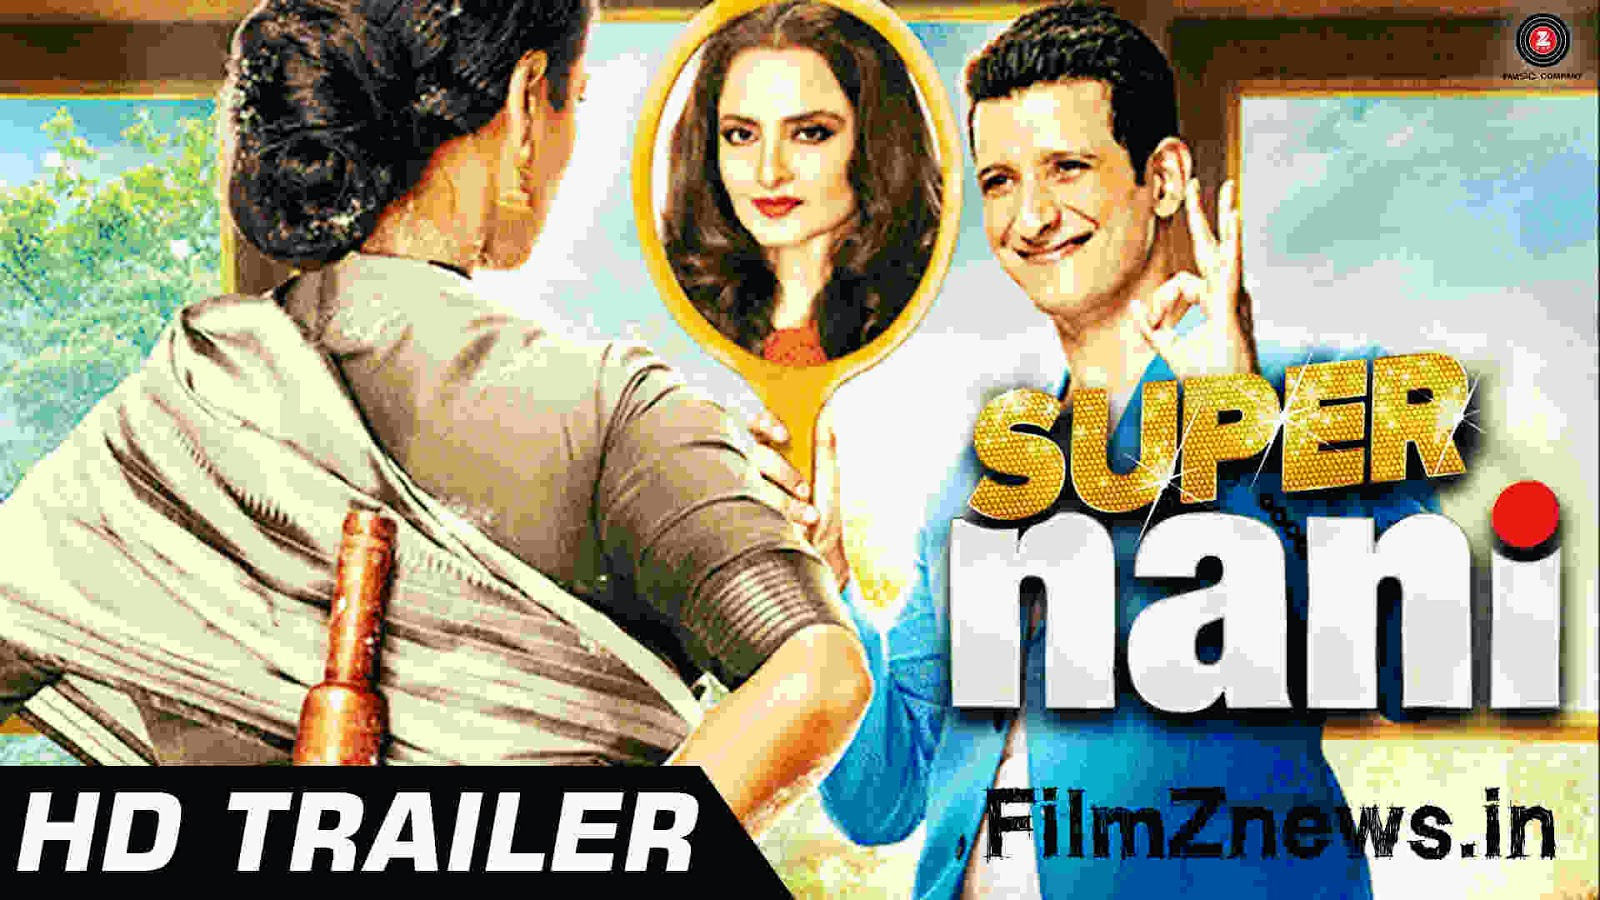 Super Nani (2014) Official Trailer - Rekha, Sharman Joshi, Shweta Kumar